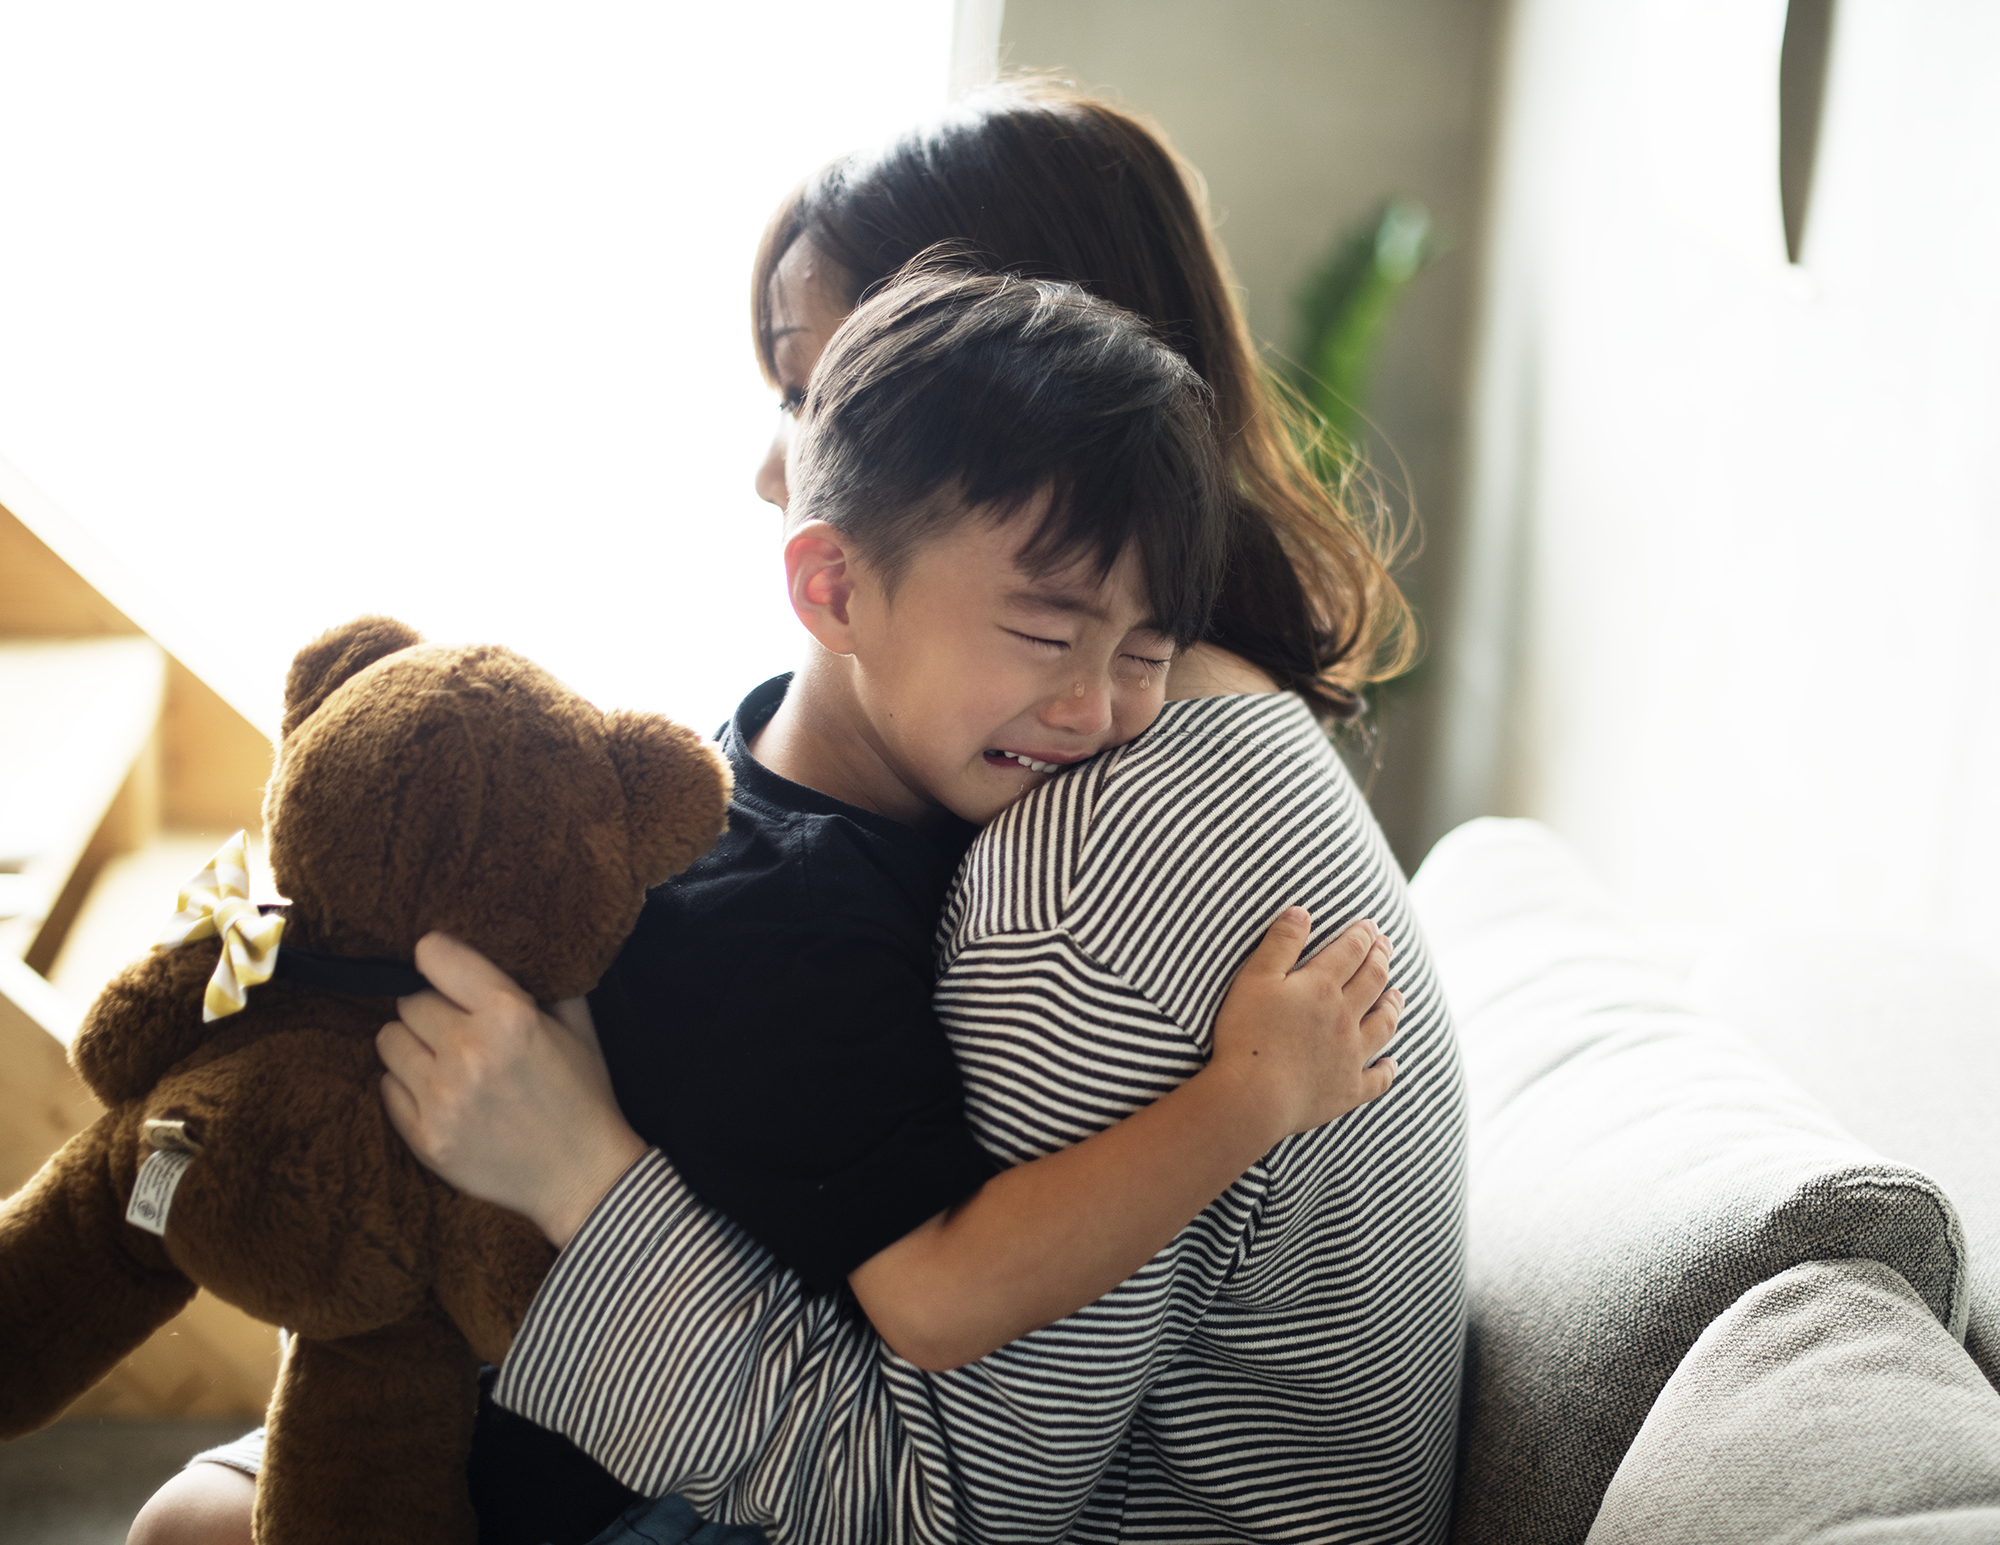 A mother hugs her crying son as he has an emotional meltdown and she is left wondering what caused it